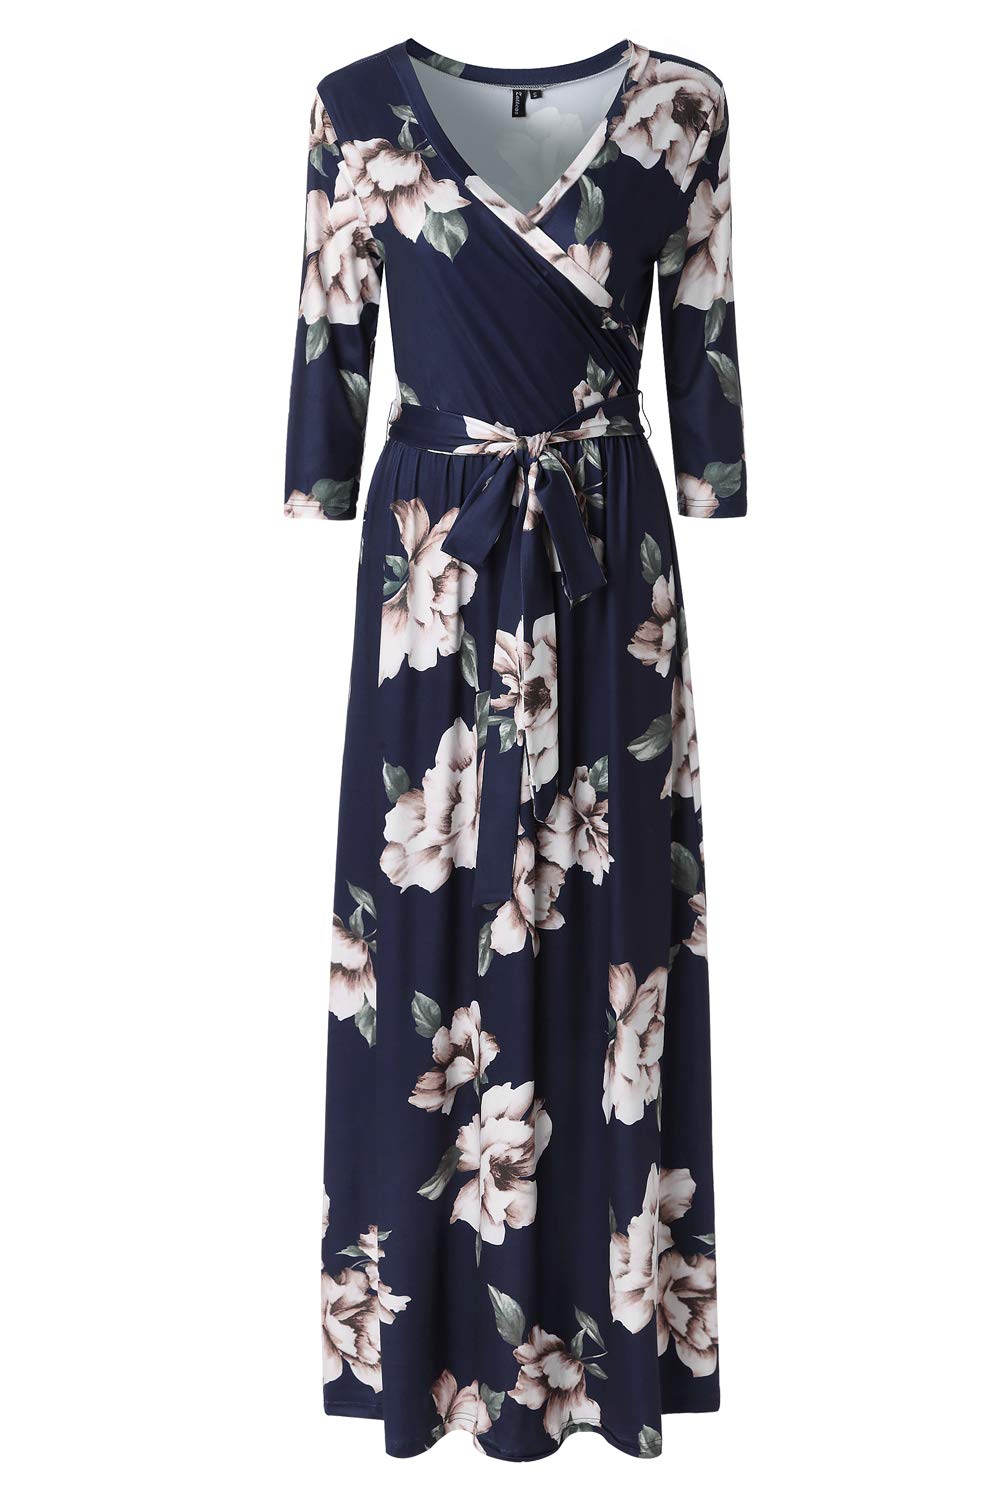 Zattcas Womens 3/4 Sleeve Floral Print Faux Wrap Long Maxi Dress with Belt (Large, Navy Printed)